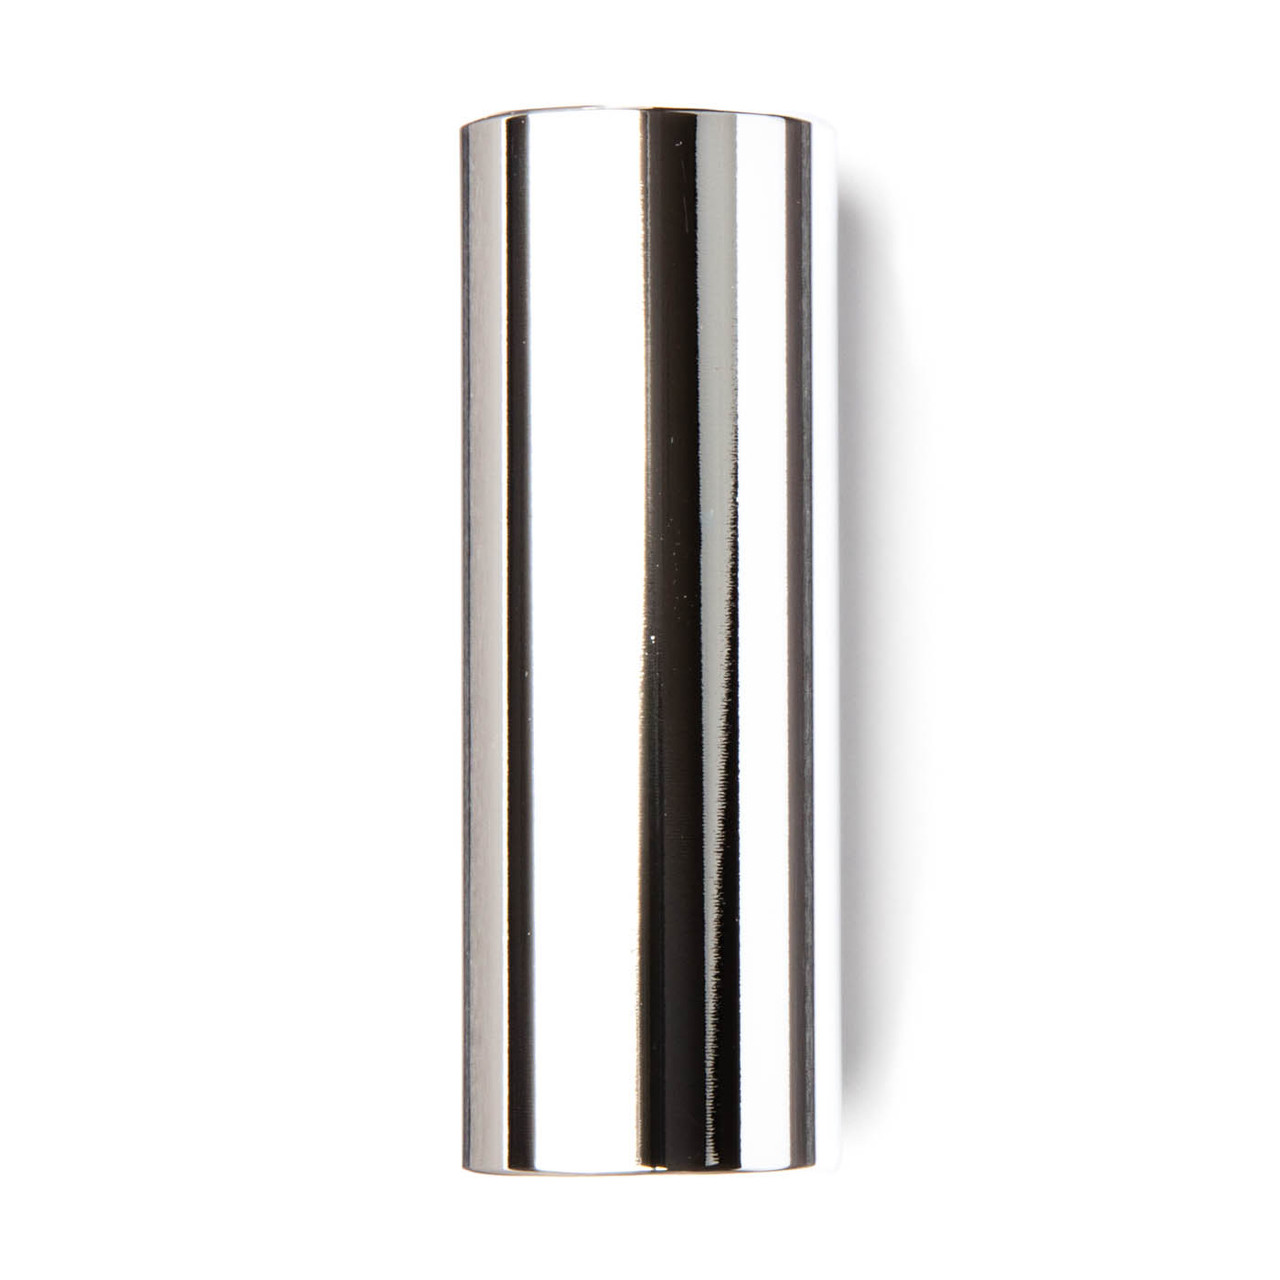 Chromed Steel Slide, 12.5″ 320